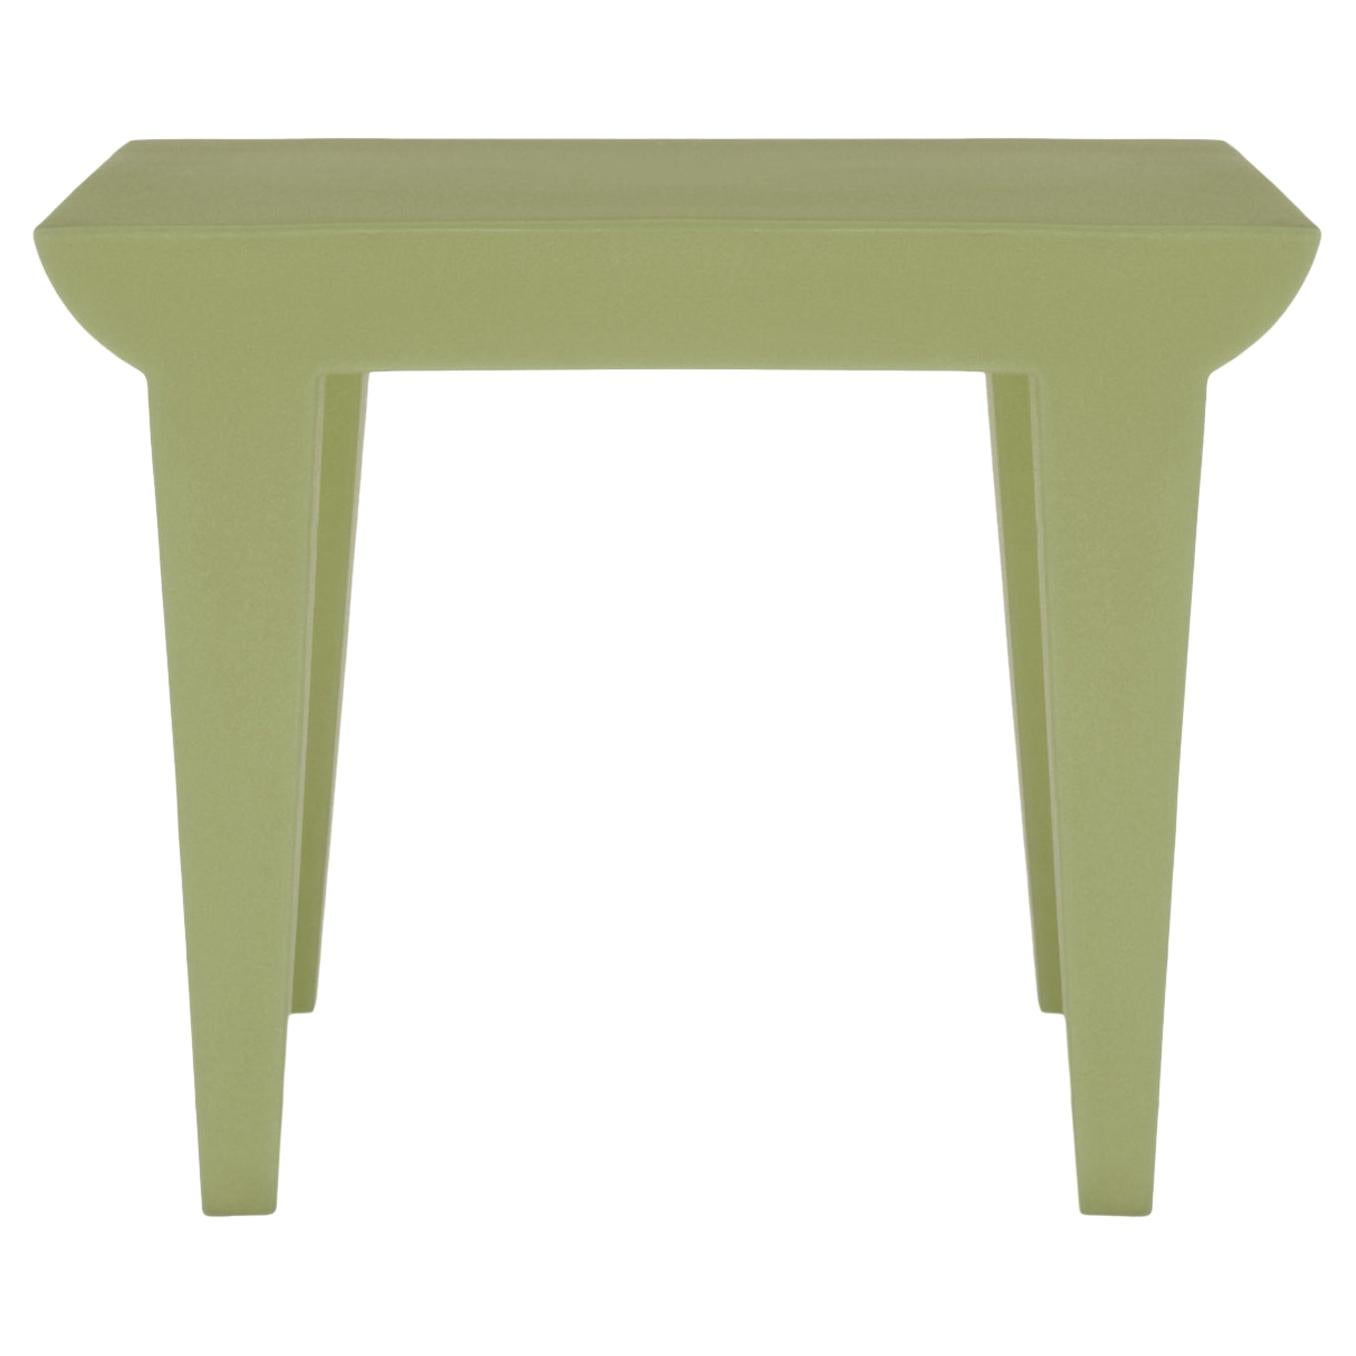 Kartell Bubble Club Side Table in Green by Philippe Starck